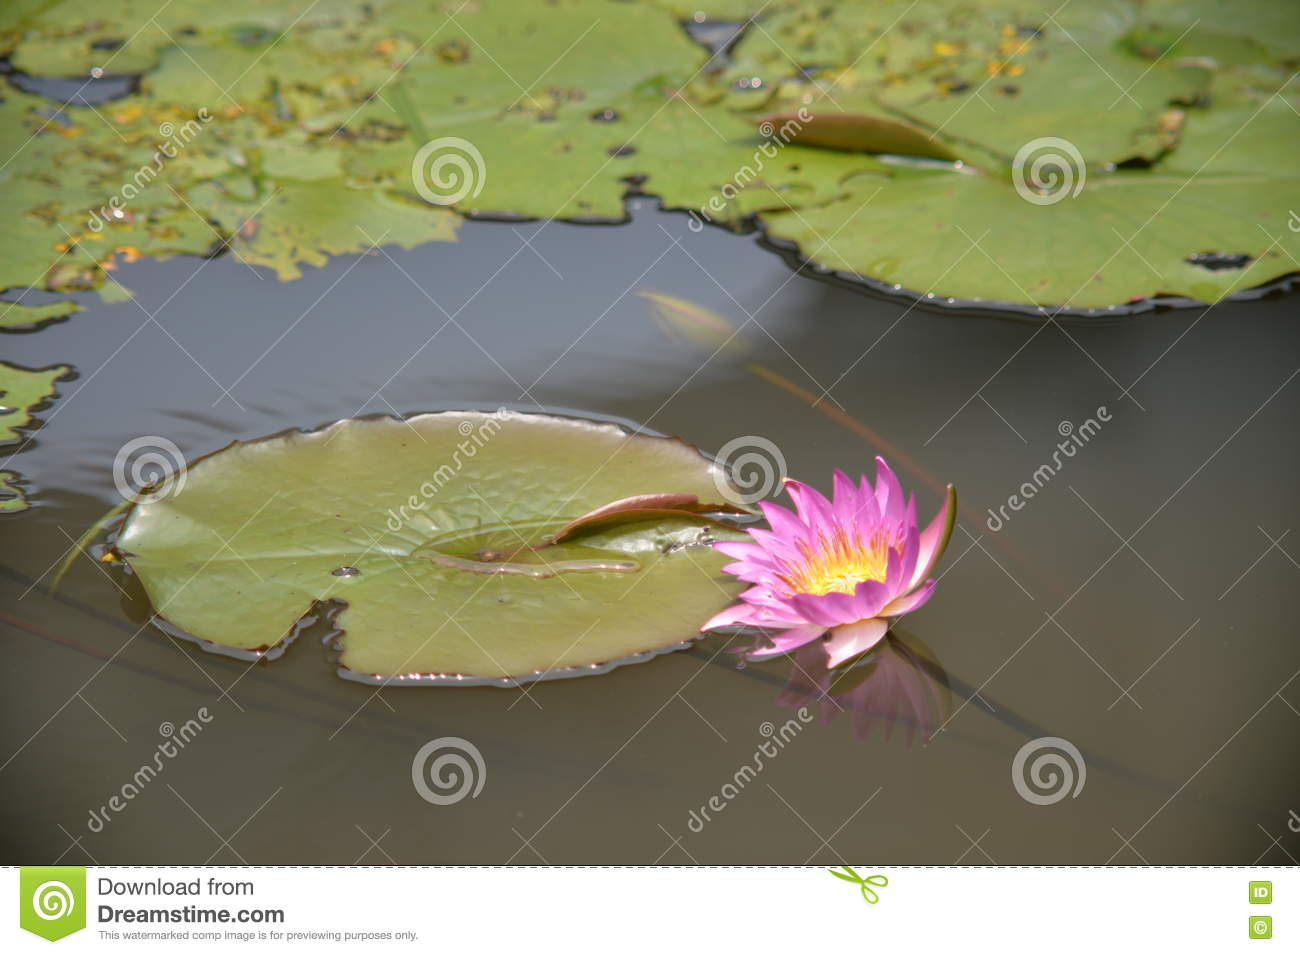 Flower like a crab stock image image of dragonfly blossomed 76273815 flower like a crab izmirmasajfo